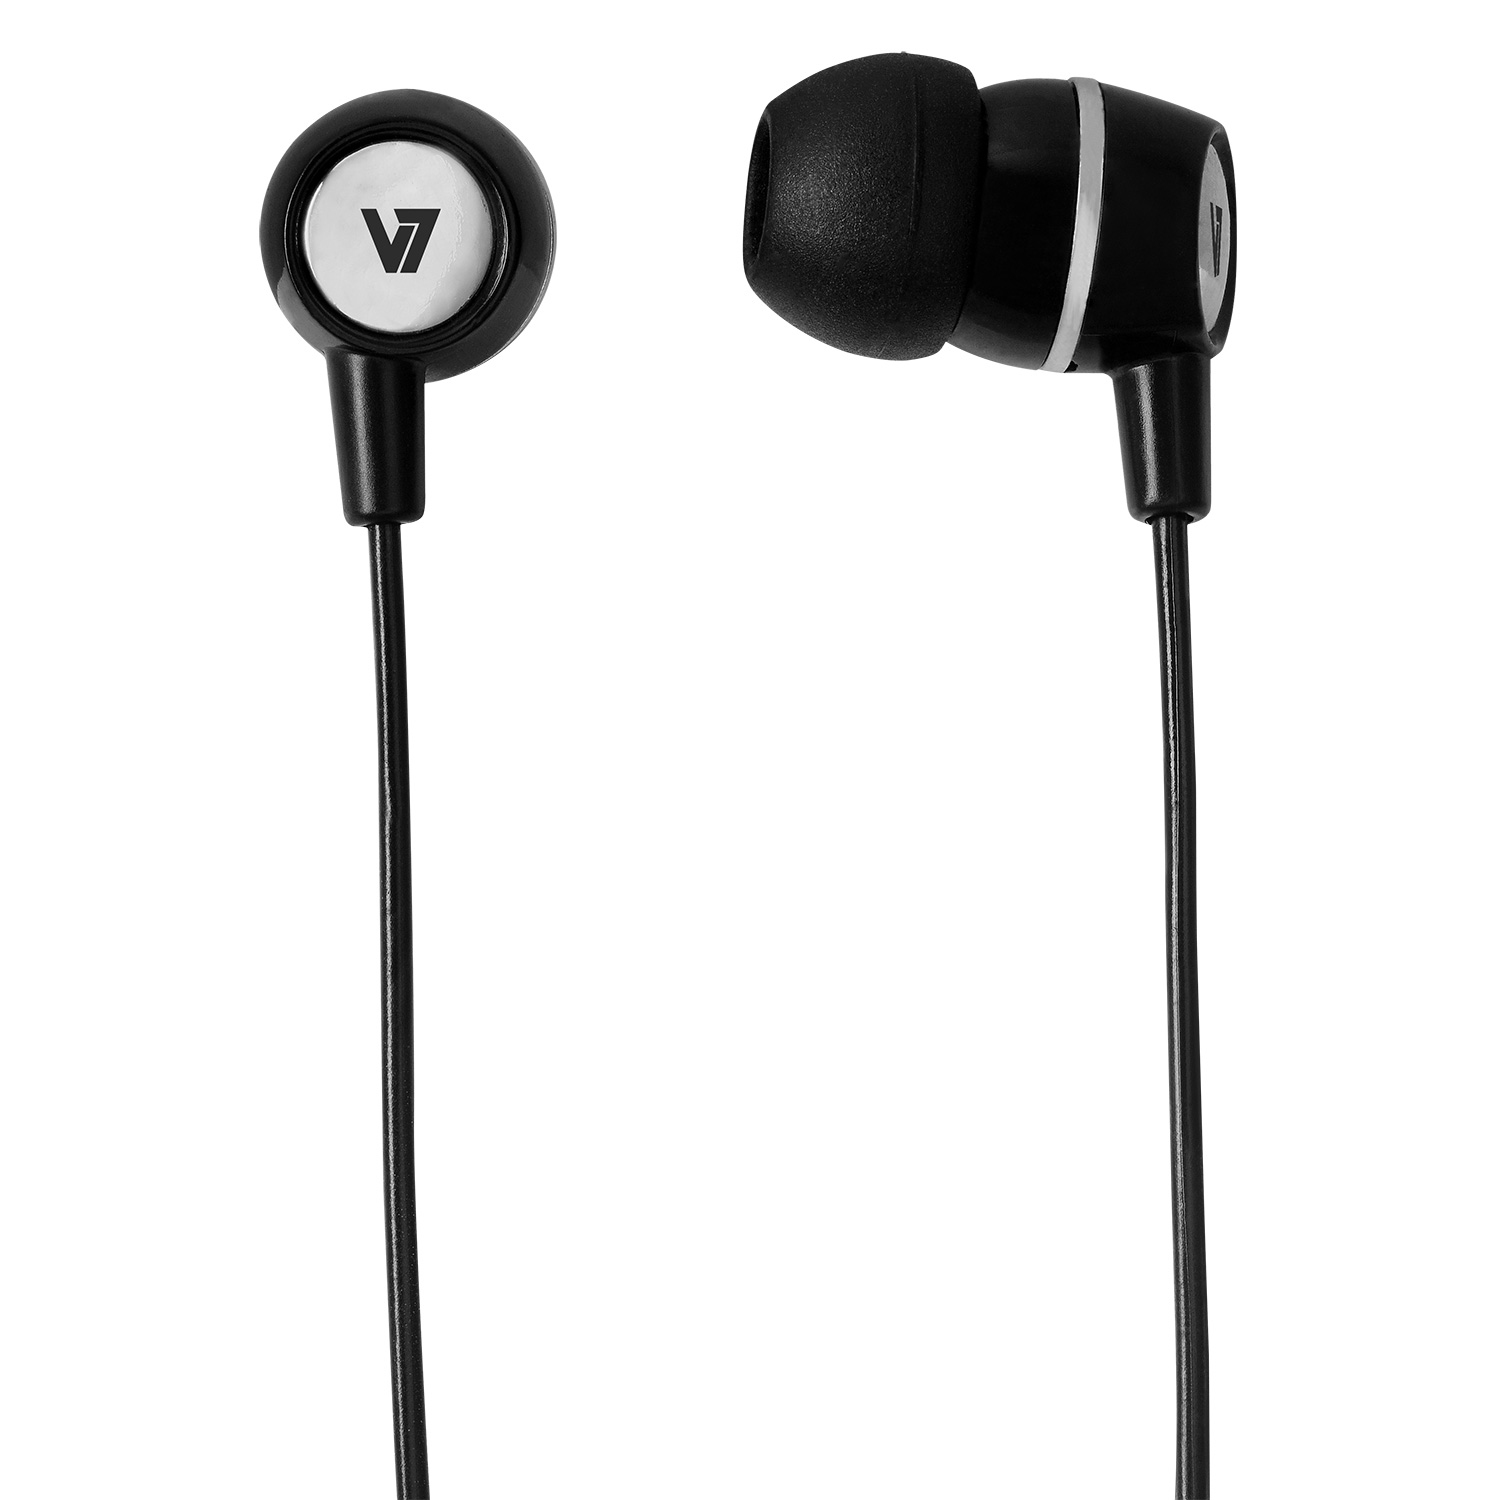 V7 - A. Audio                    V7 Earbuds With Inline Mic Blak     3.5mm Plug  For Mobile Devices   In Ha110-blk-12eb